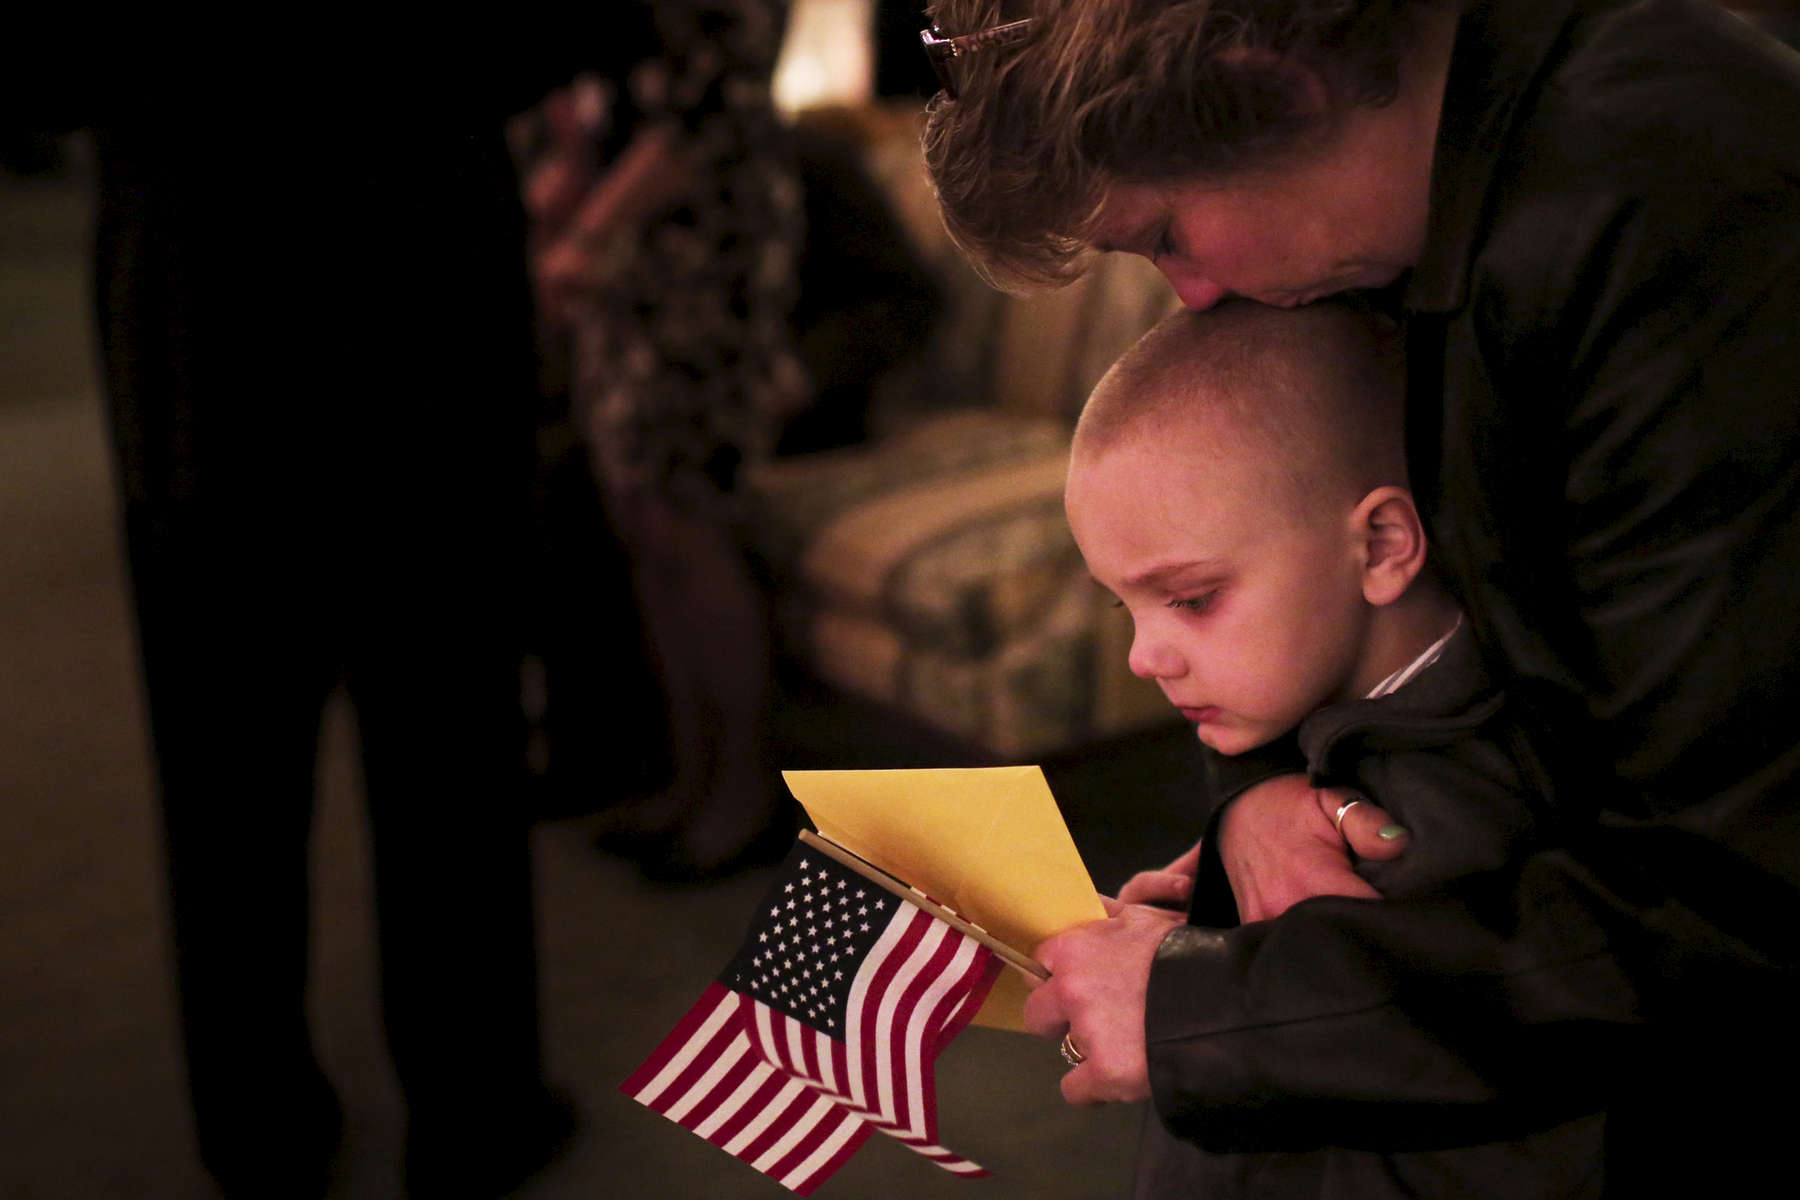 As Amanda Tiffany visited the casket of her deceased boyfriend Army Sgt. Daniel Nerstrom, her son Austin is comforted by a loved one during his funeral at Burnett-Dane Funeral Home in Libertyville, Ill. Nerstrom, a combat veteran, took his own life after suffering from post traumatic stress disorder.